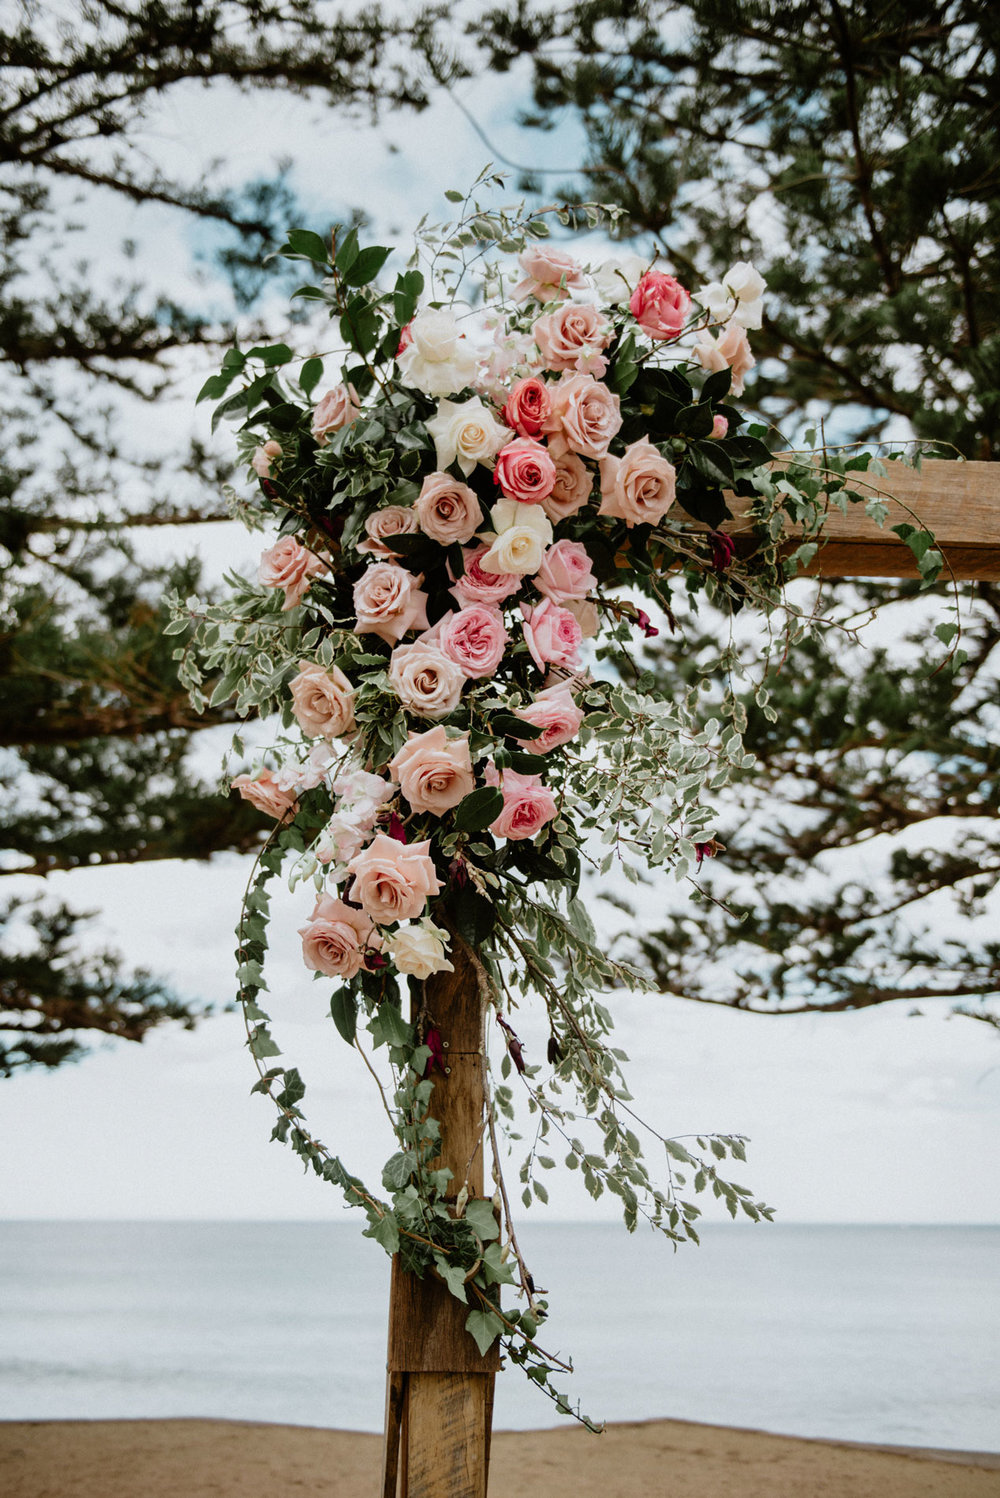 wedding_flowers_linda_antonio1.jpg